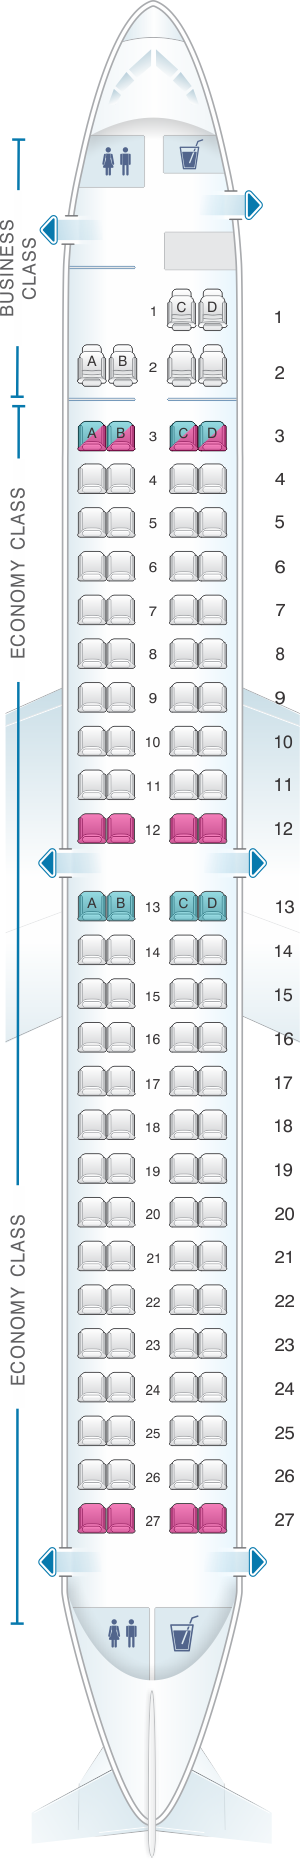 Seat map for TAP Air Portugal Embraer E190